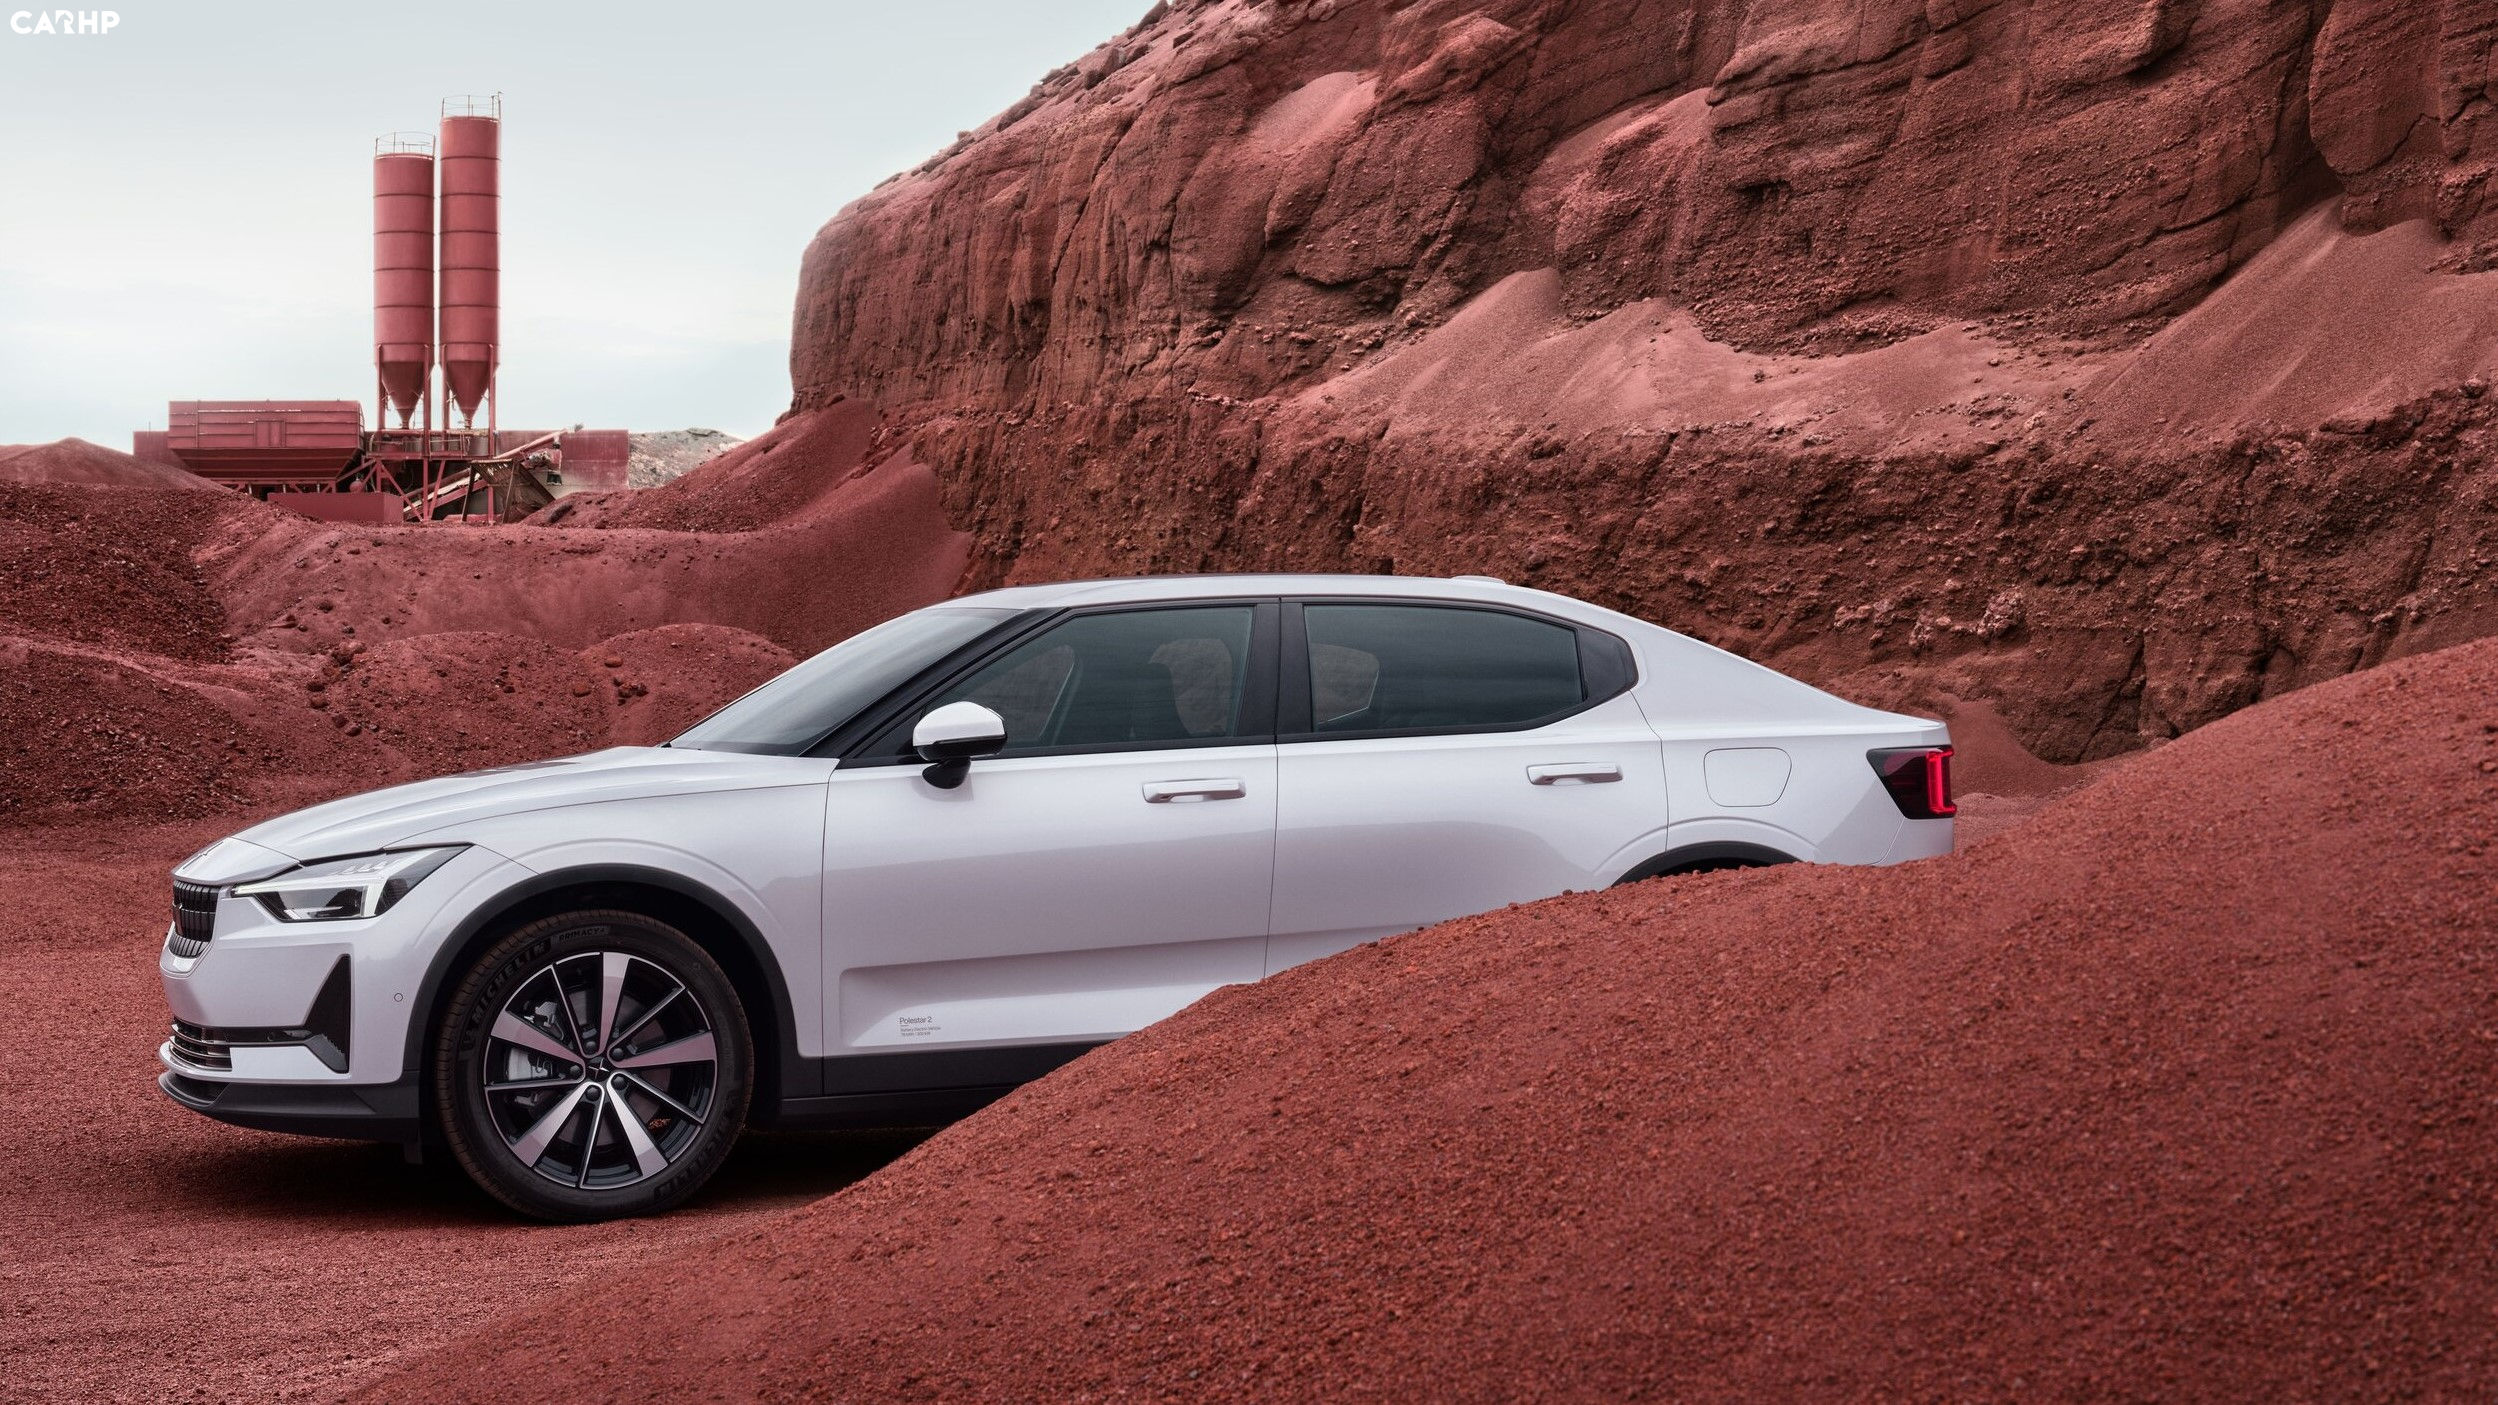 Polestar Aims For New Levels of Transparency